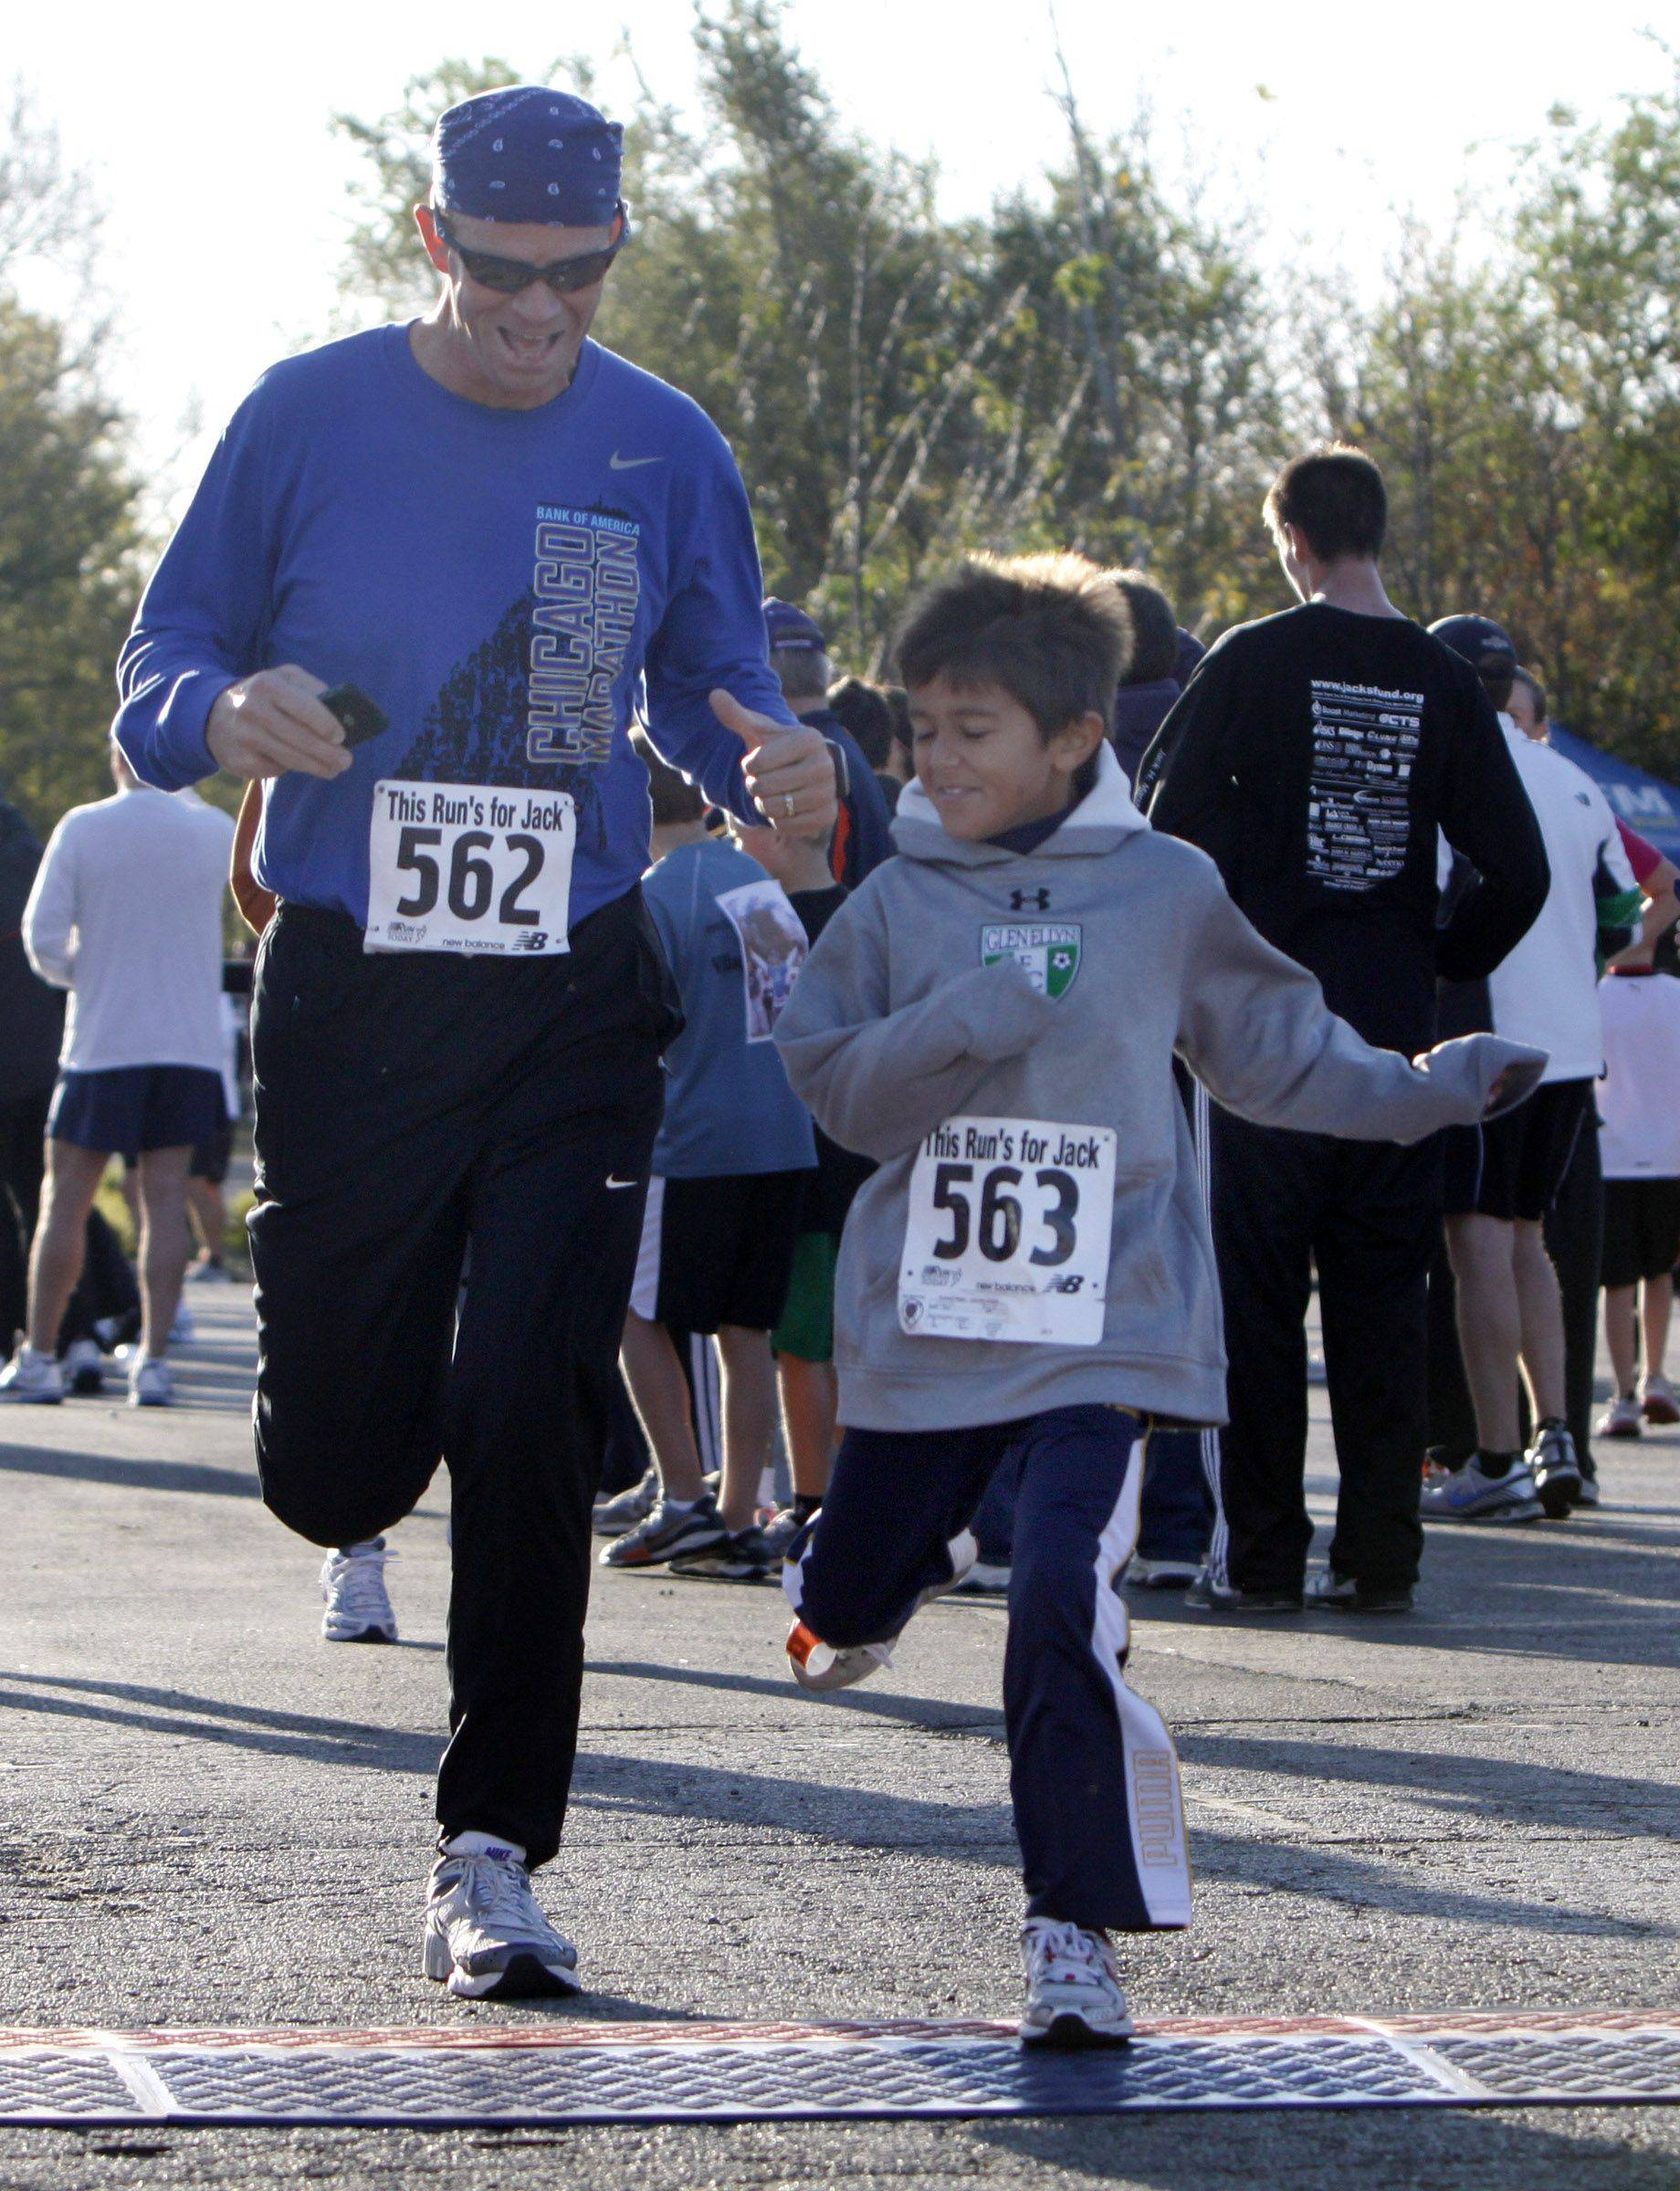 Karl Irwin of Glen Ellyn and his eight-year-old son Kyle stroll to the finish line at the seventh-annual This Run's for Jack 5K run/walk Sunday at Ackerman Park in Glen Ellyn.